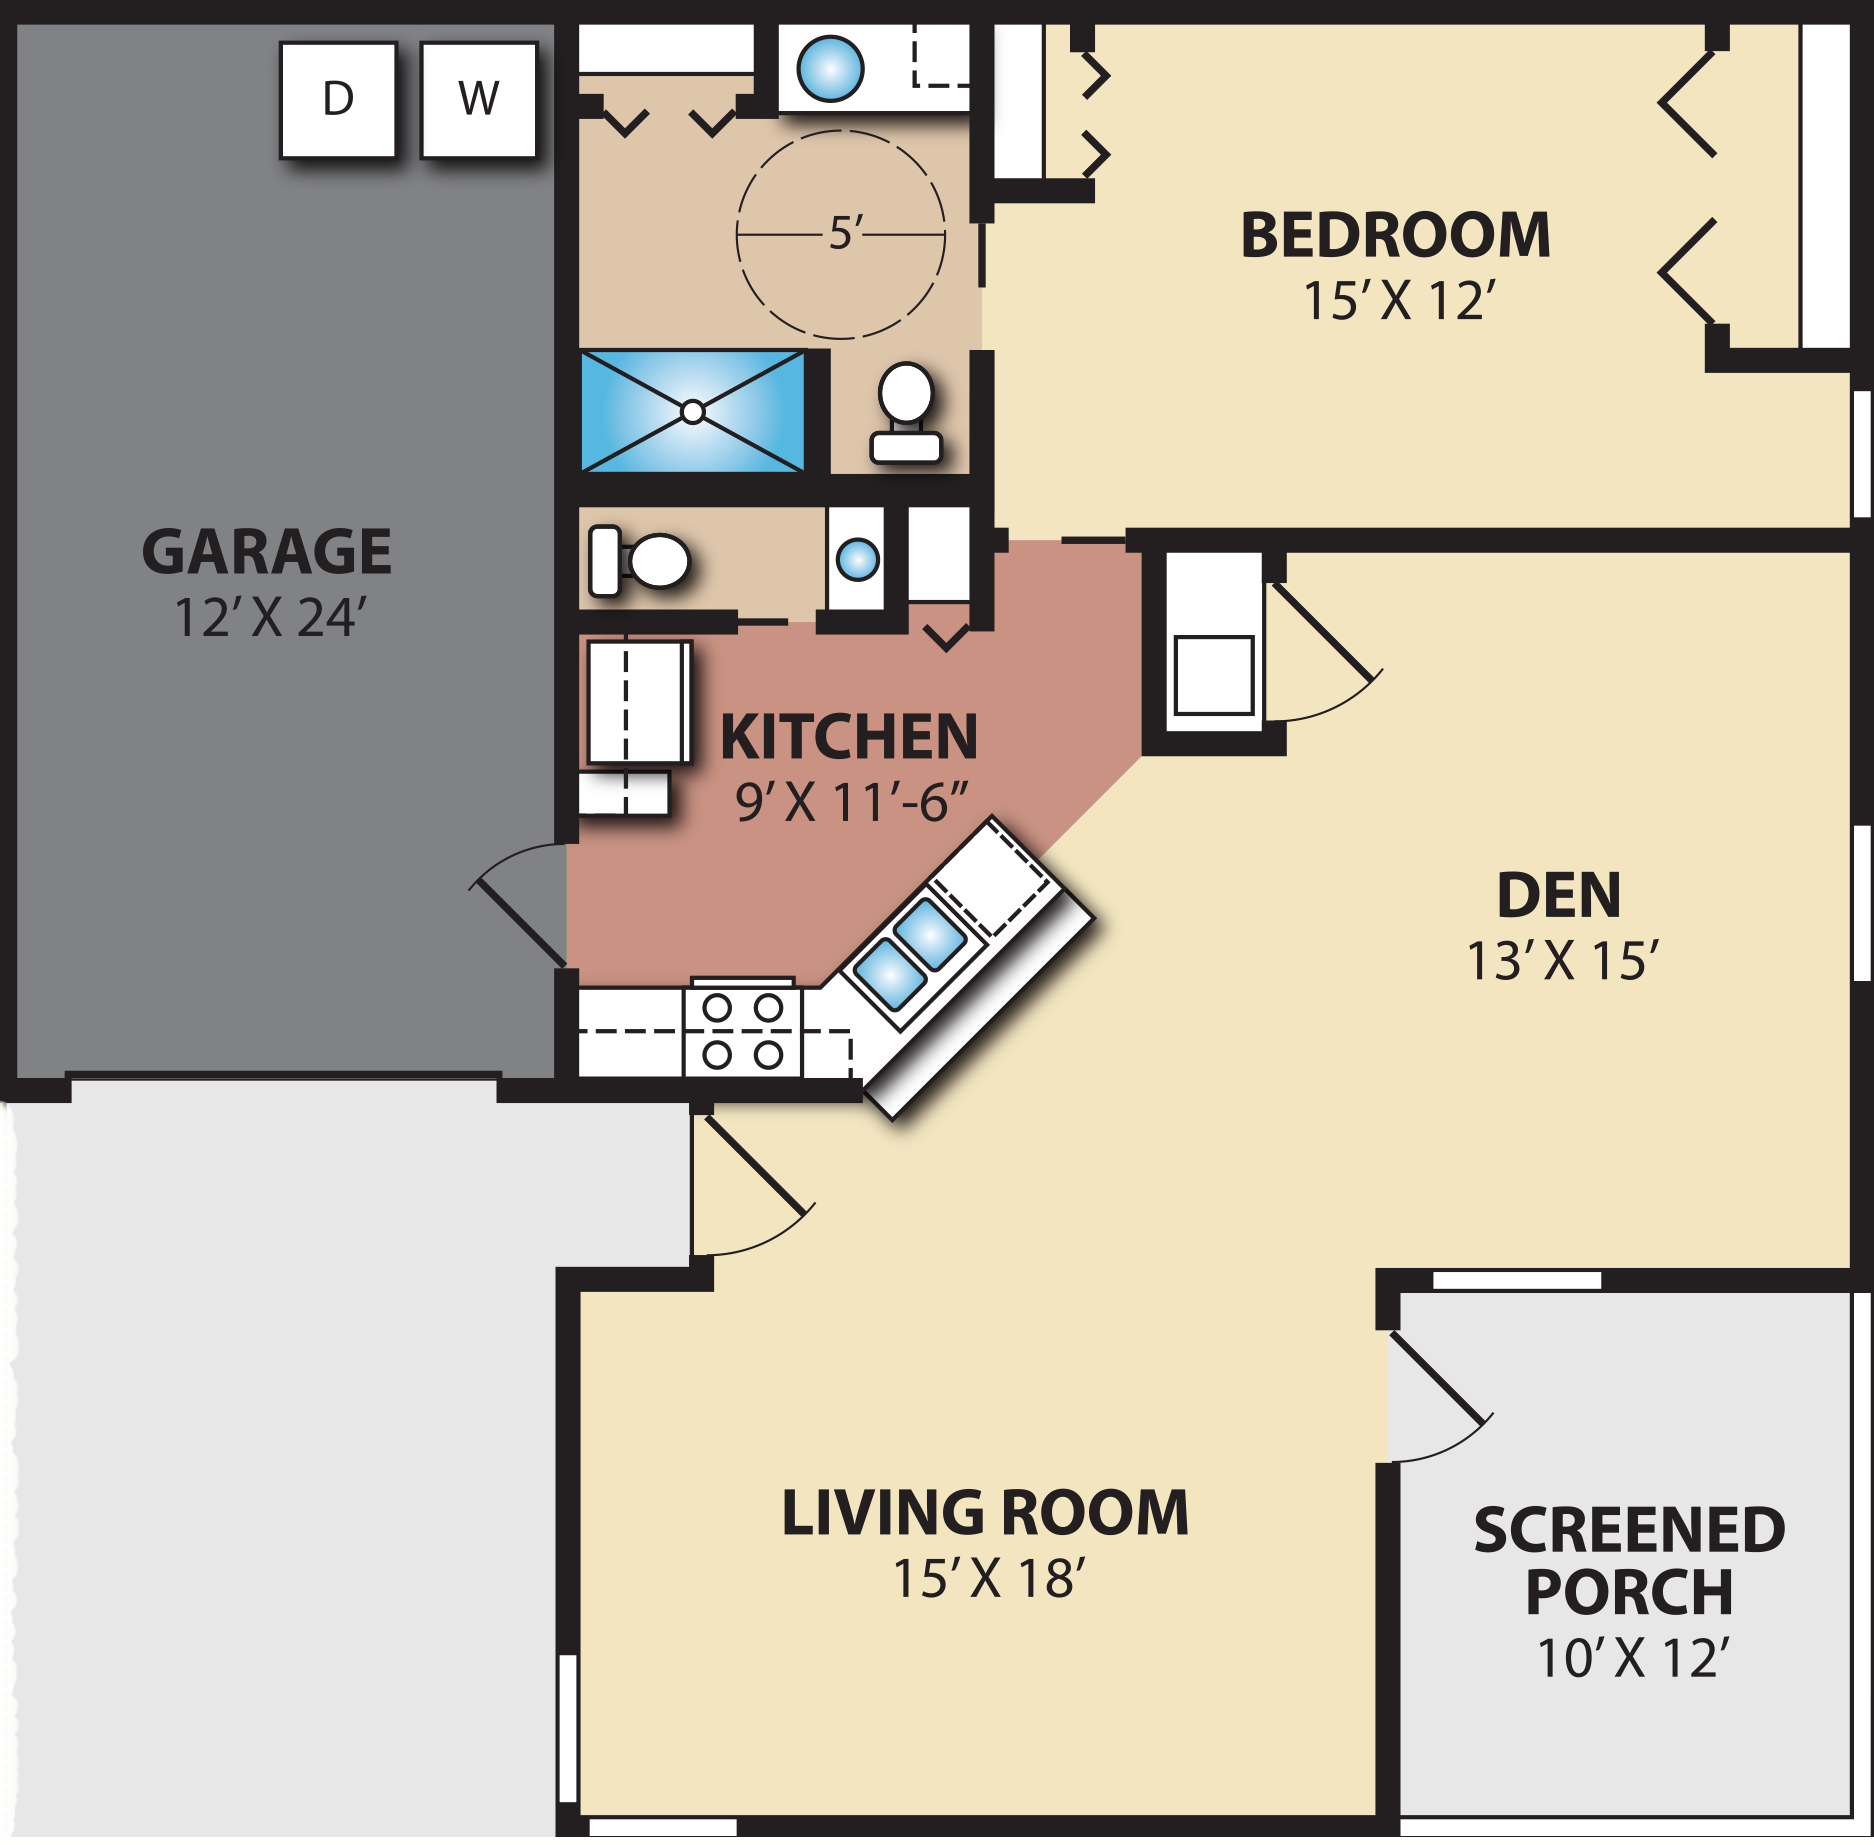 13 x 15 living room layout for 10 x 13 living room layout